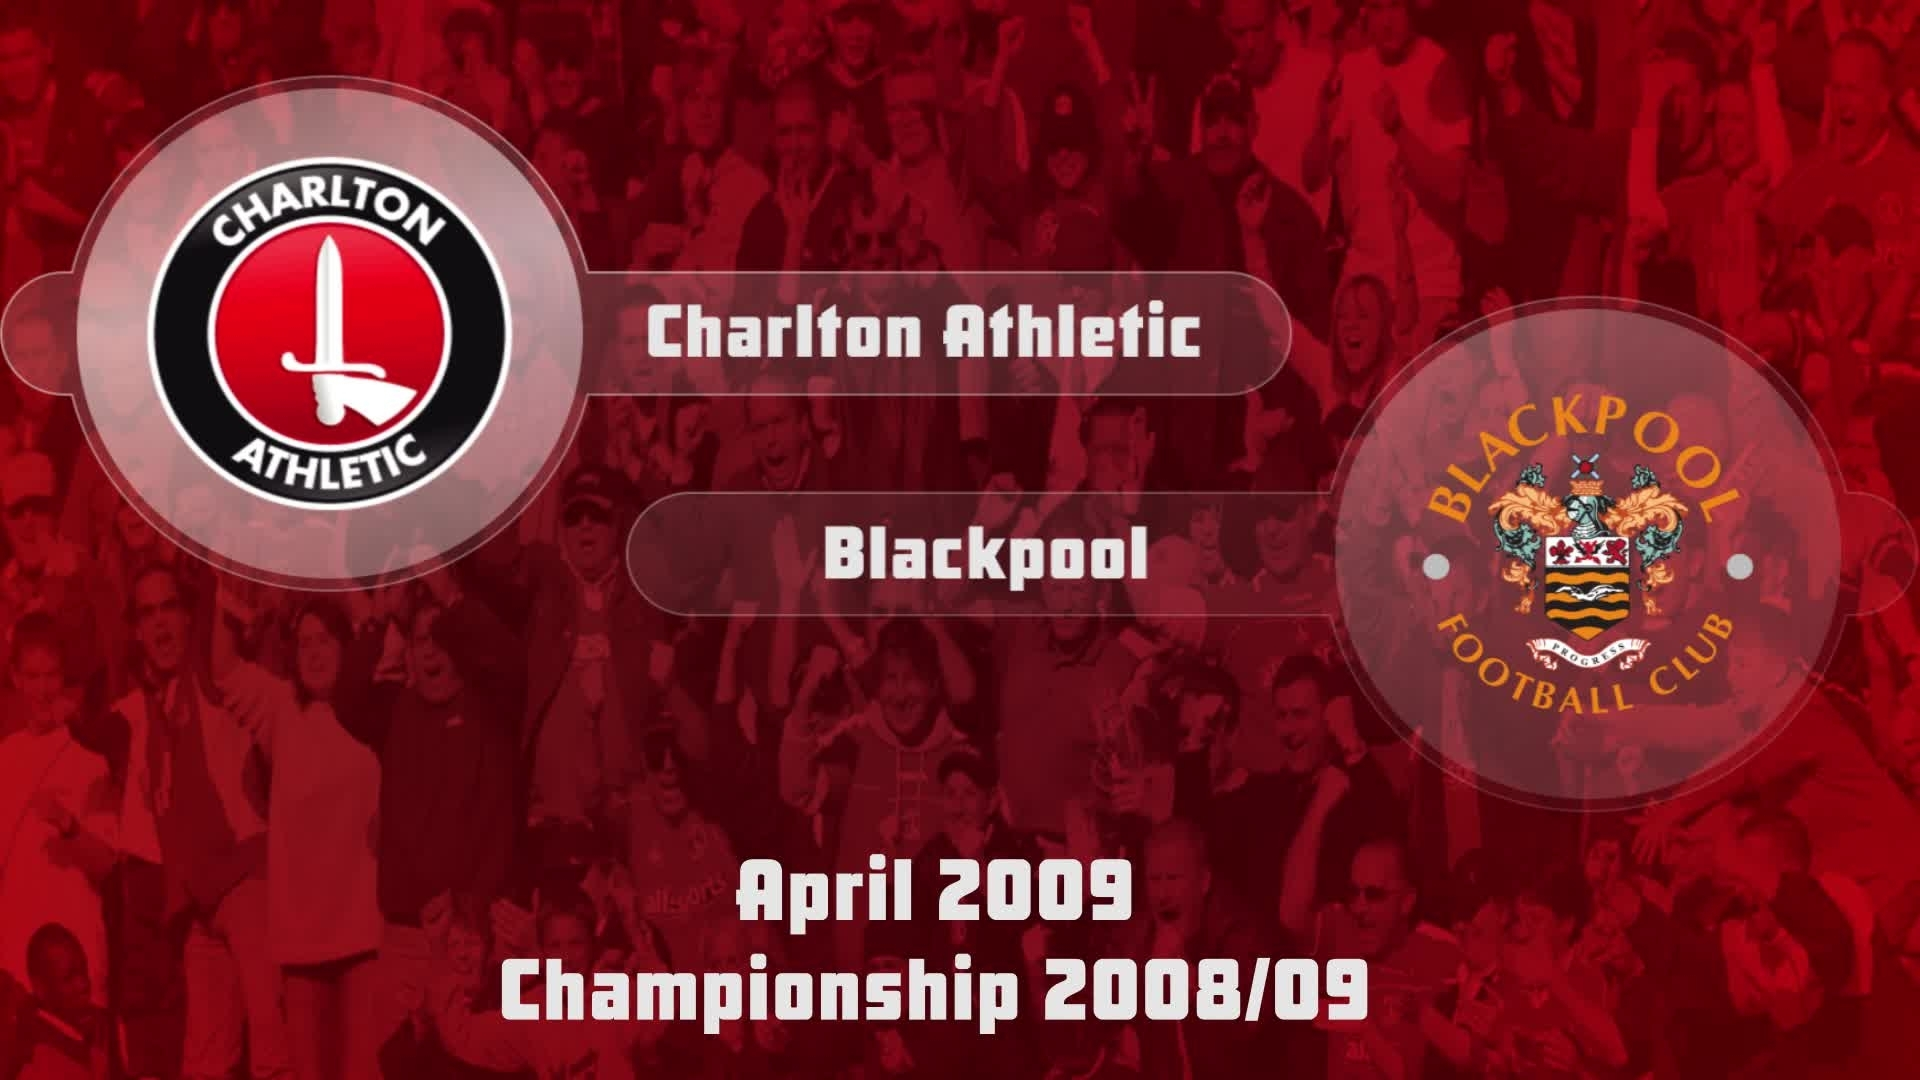 47 HIGHLIGHTS | Charlton 2 Blackpool 2 (April 2009)